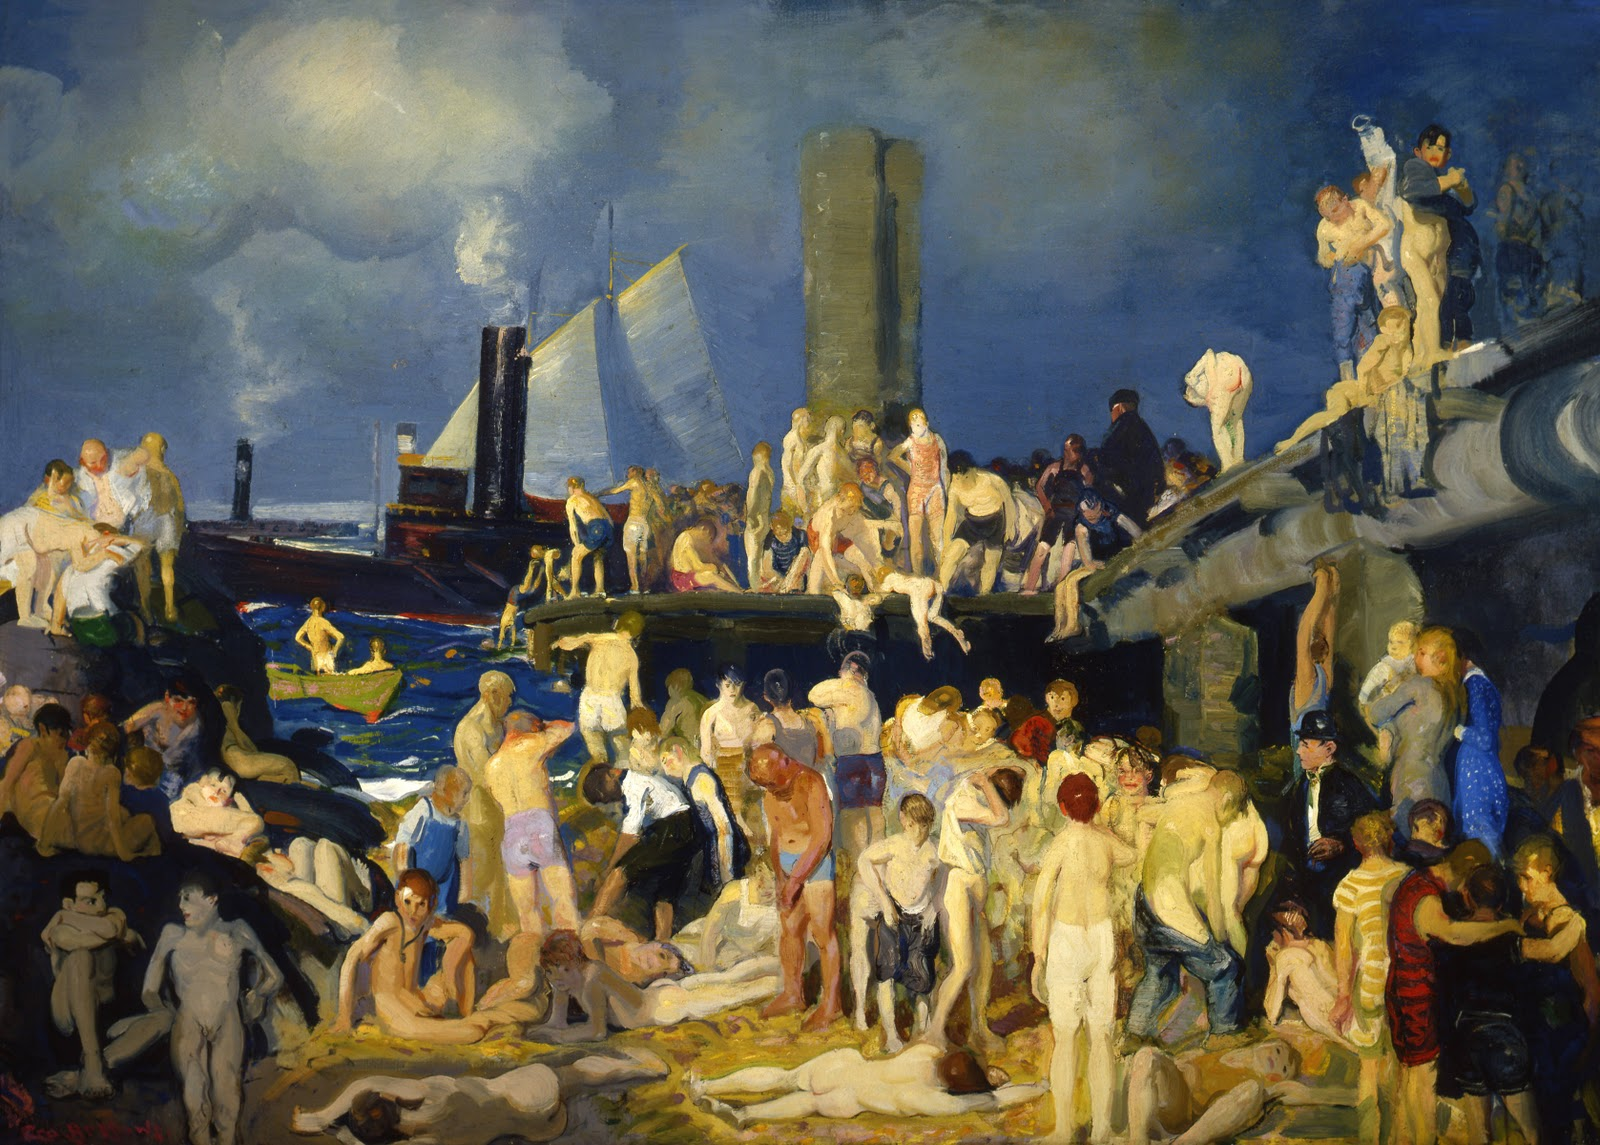 the life and works of george bellows a painter On march 16 a retrospective devoted to the works of american painter george bellows  painting of live subjects and  world socialist web site.